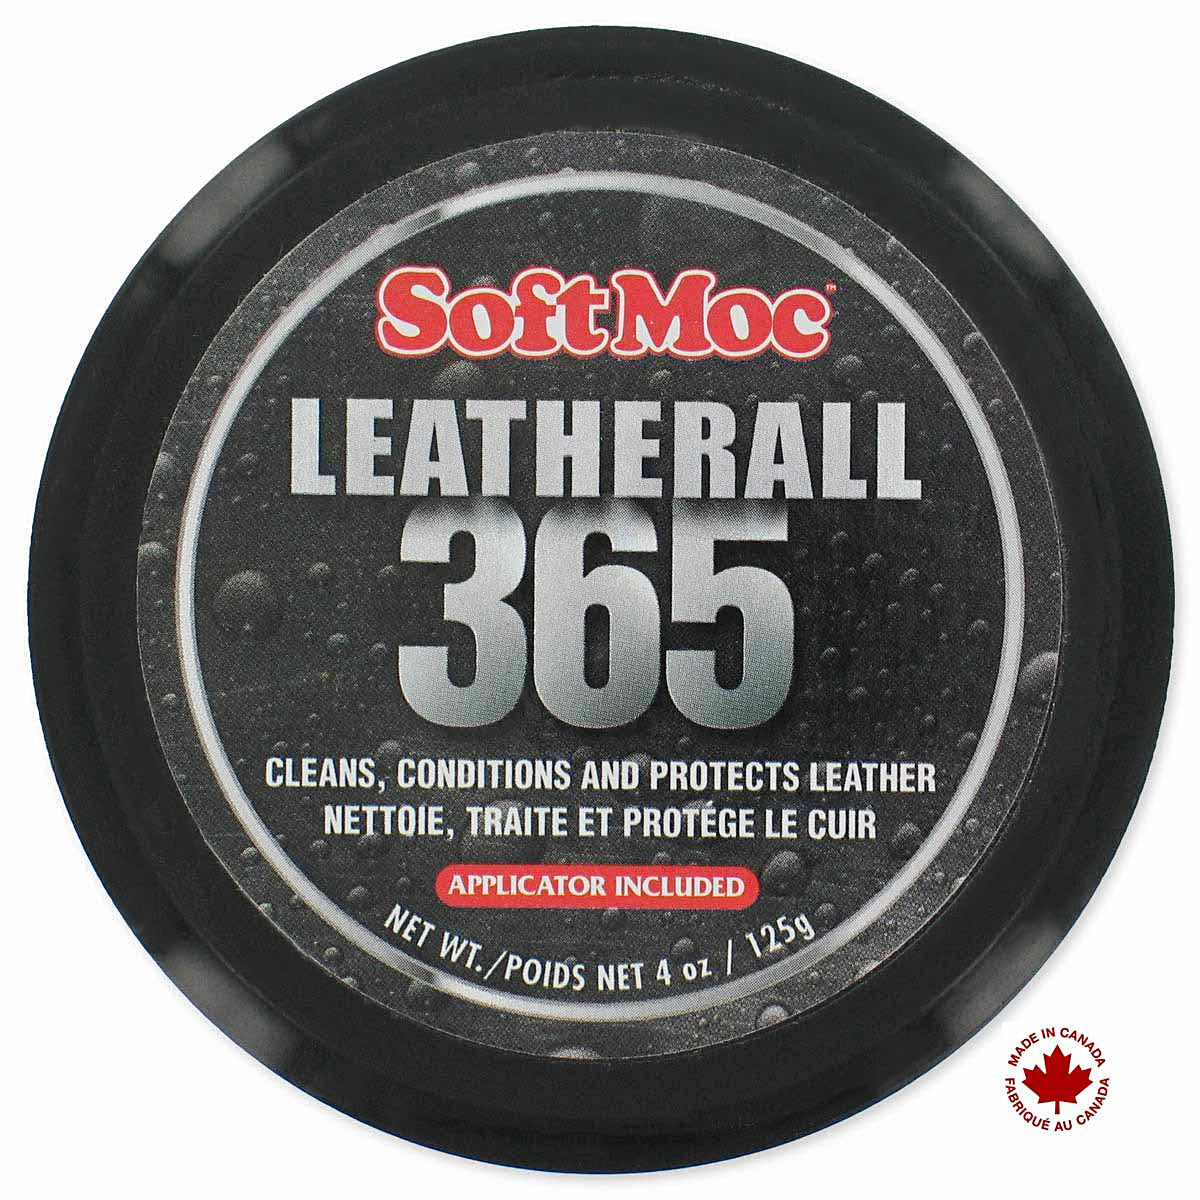 Shoe Care 365LeatherAll Leather Lube